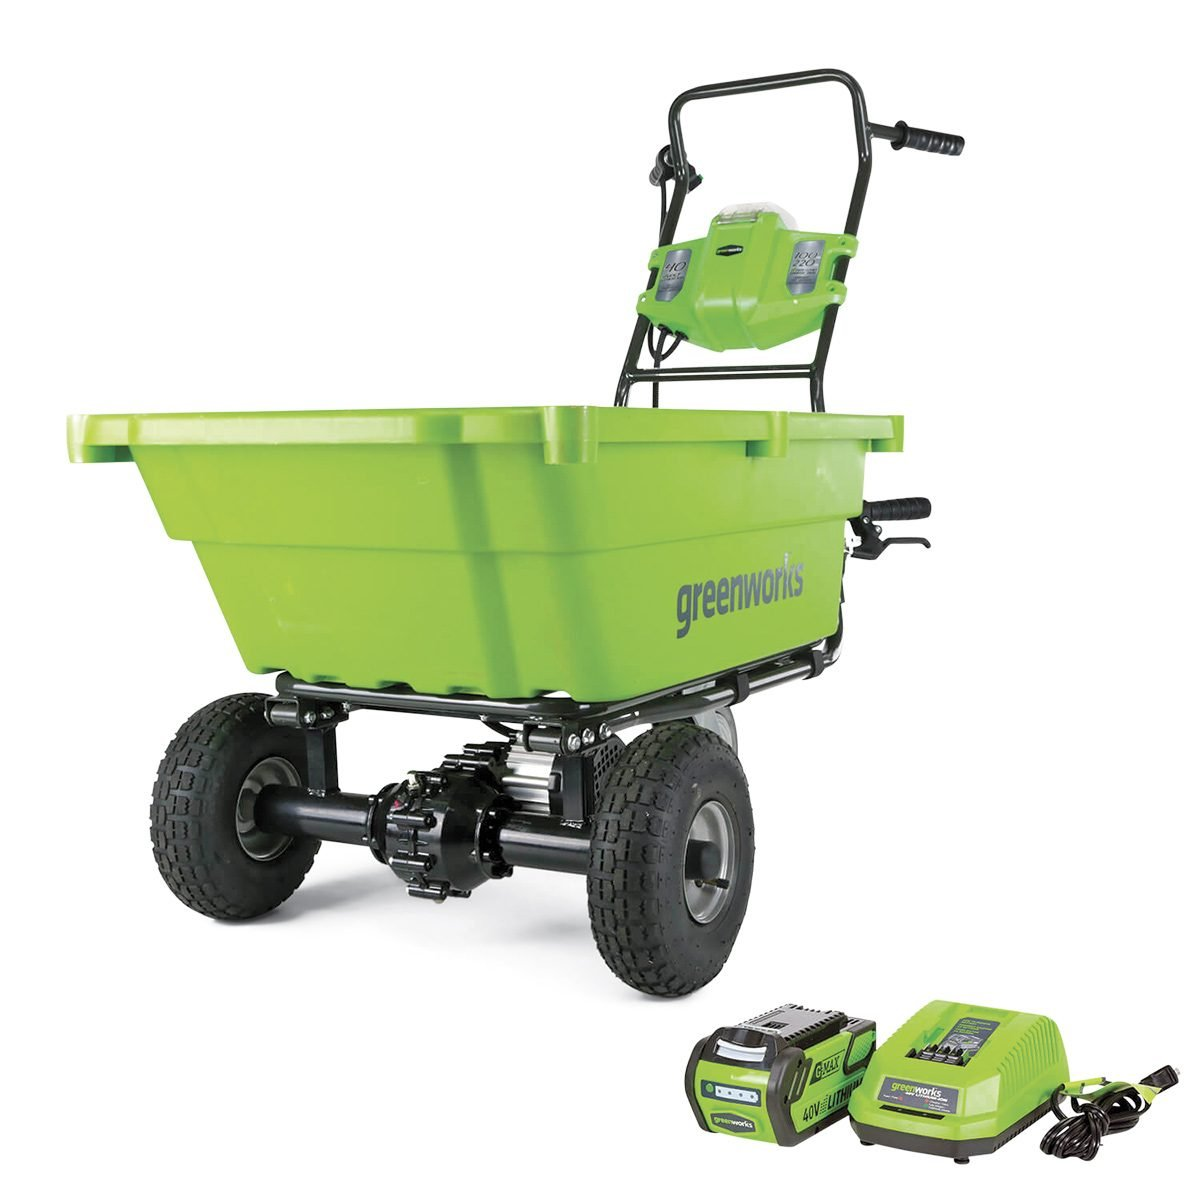 Greenworks self-propelled wheelbarrow